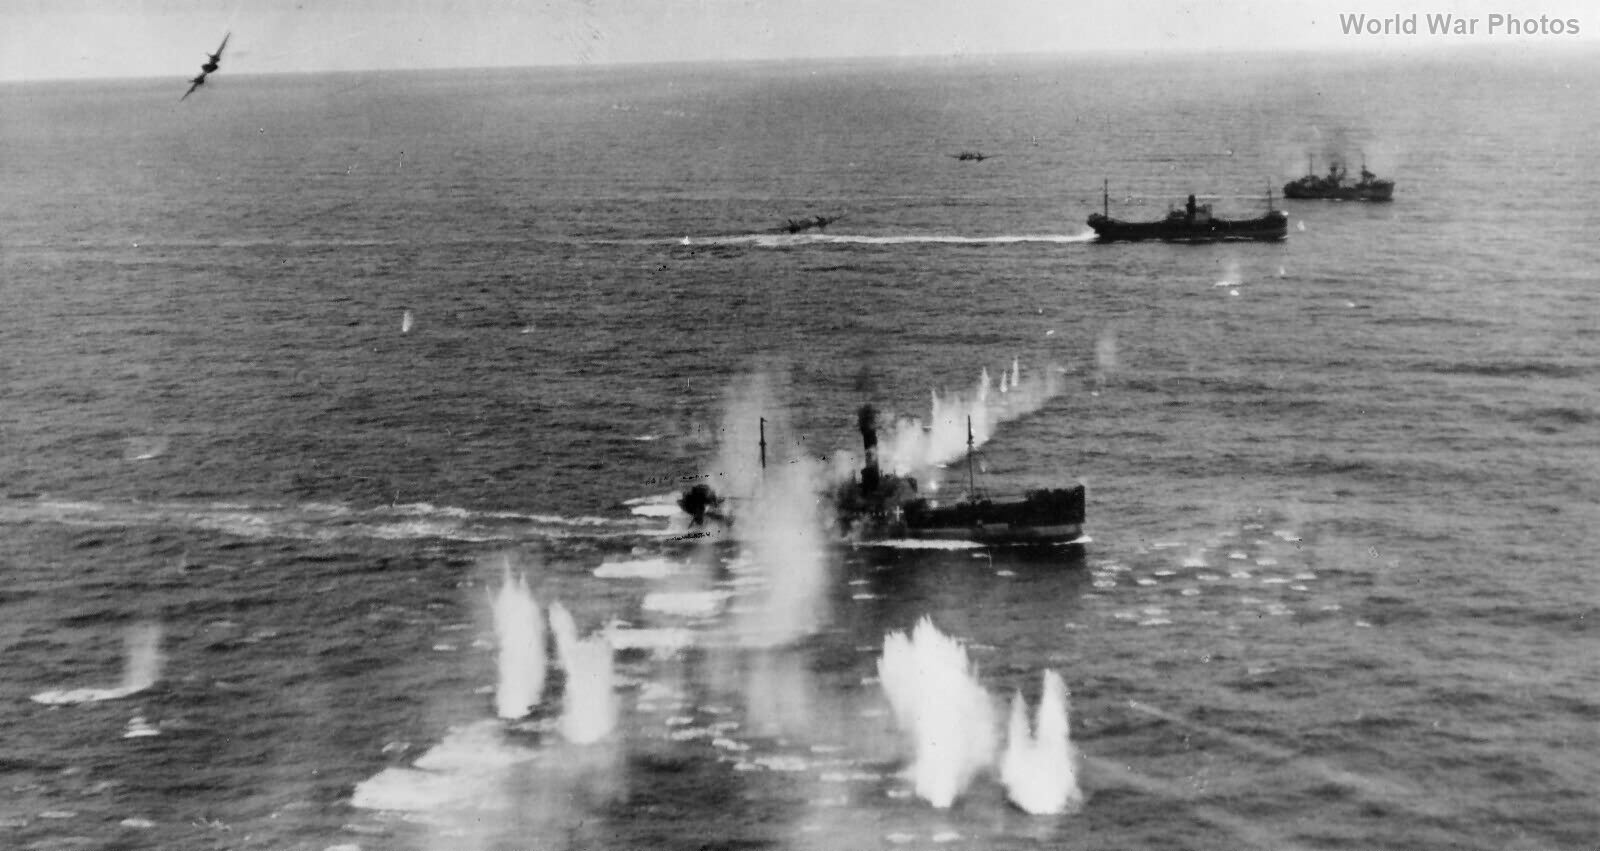 Beaufighter Convoy attack 29 March 1944